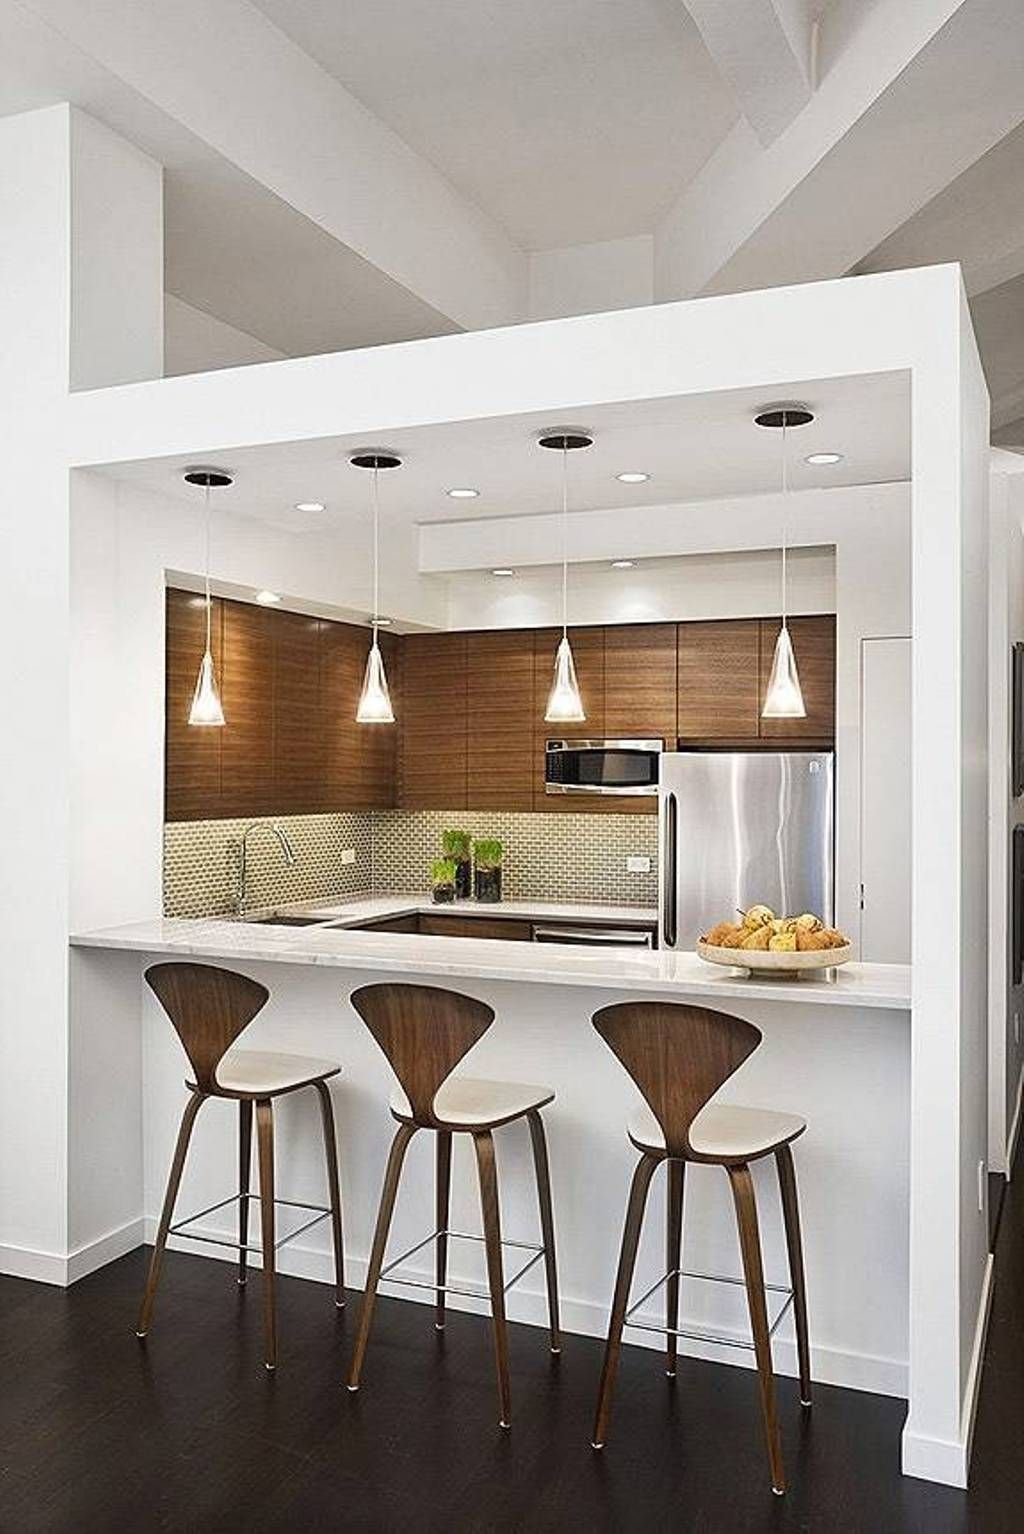 25 Modern Small Kitchen Design Ideas | Kitchen Design ... on creative storage for small kitchens, kitchen colors for small kitchens, kitchen nooks for small kitchens, appliances for small kitchens, good colors for small kitchens, design for small kitchens, renovations for small kitchens, cabinet styles for small kitchens, kitchen carts for small kitchens, islands for small kitchens, tile colors for small kitchens, remodeling ideas for living rooms, small stoves for small kitchens, kitchen cabinets for small kitchens, remodeling small kitchen layouts design, countertops for small kitchens, kitchen remodels for small kitchens, cafe tables for small kitchens, kitchen remodeling for small kitchens, kitchen tables for small kitchens,